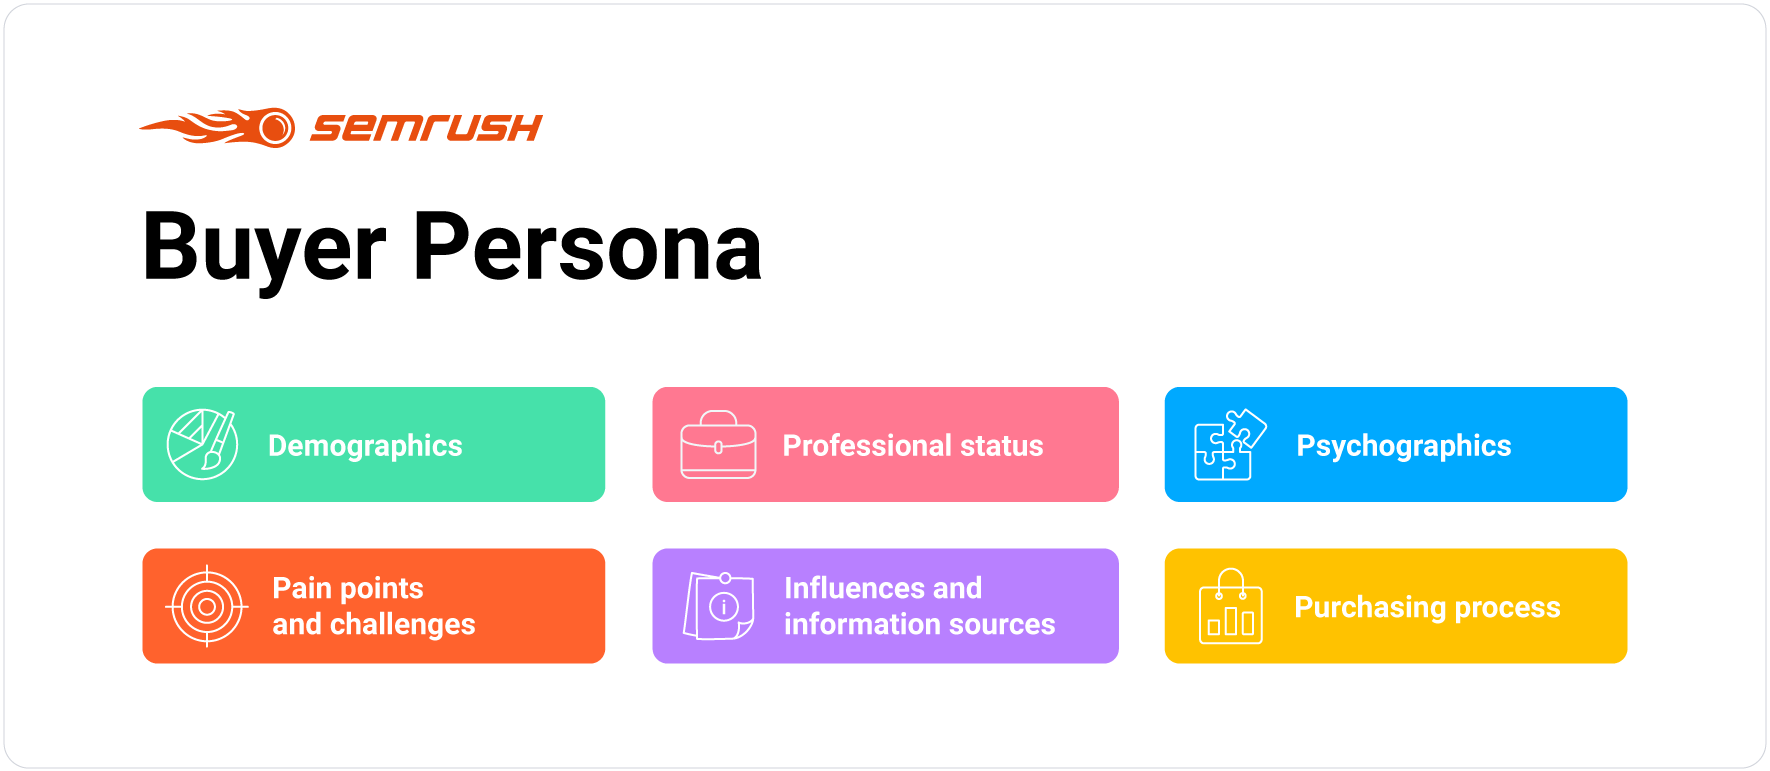 Characteristics of the buyer persona profile